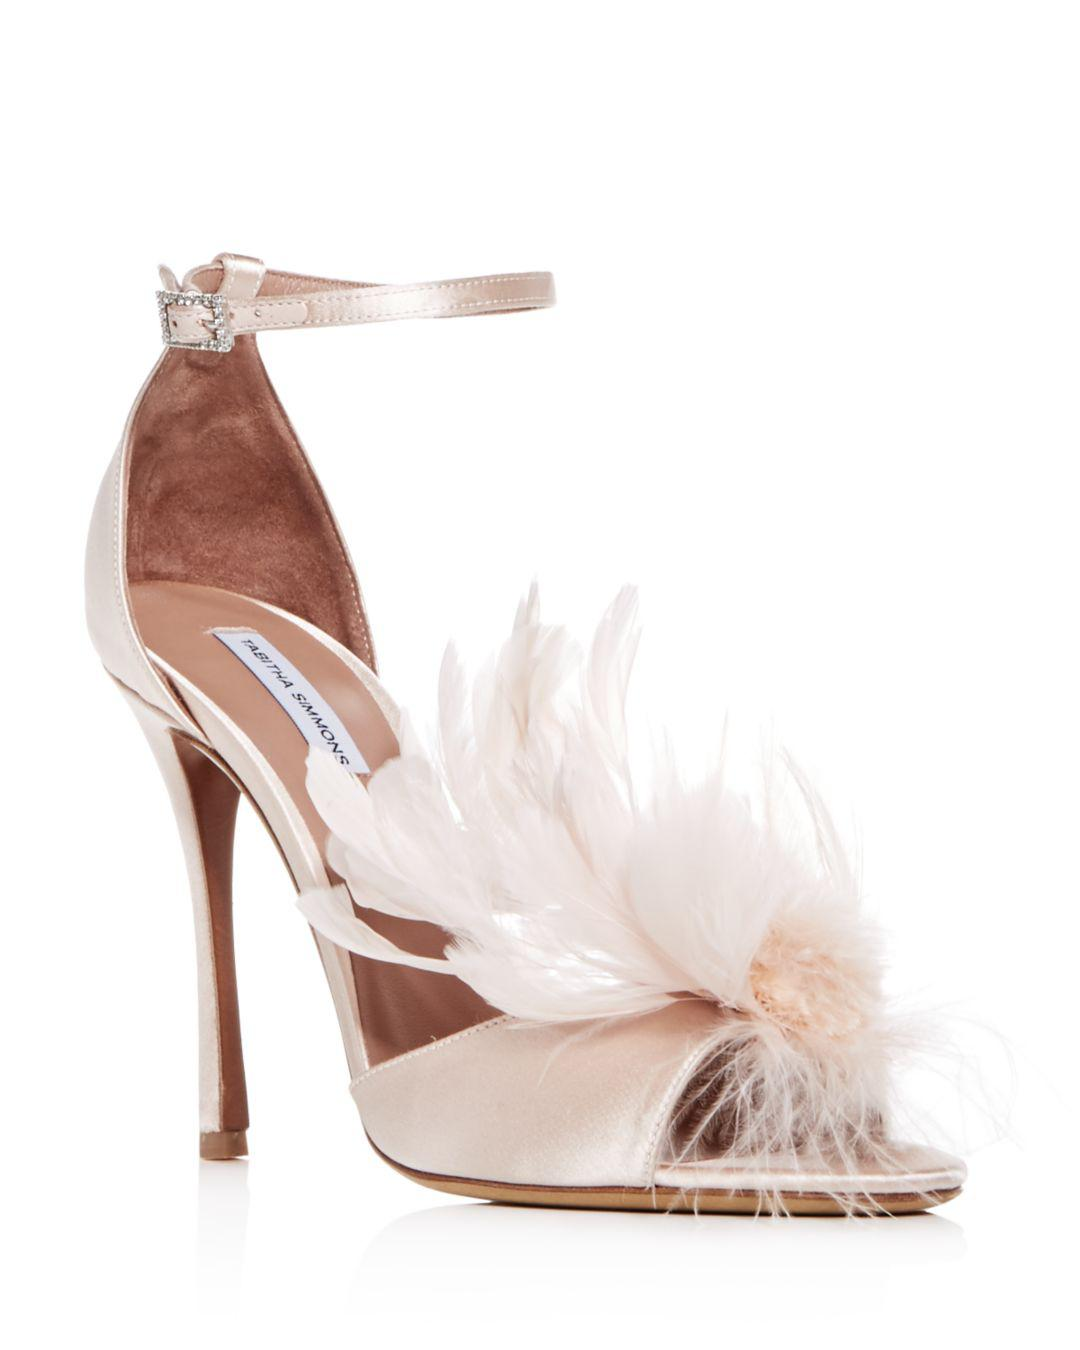 17a317c2ff8 Lyst - Tabitha Simmons Women s Satin   Feather High-heel Sandals in Pink